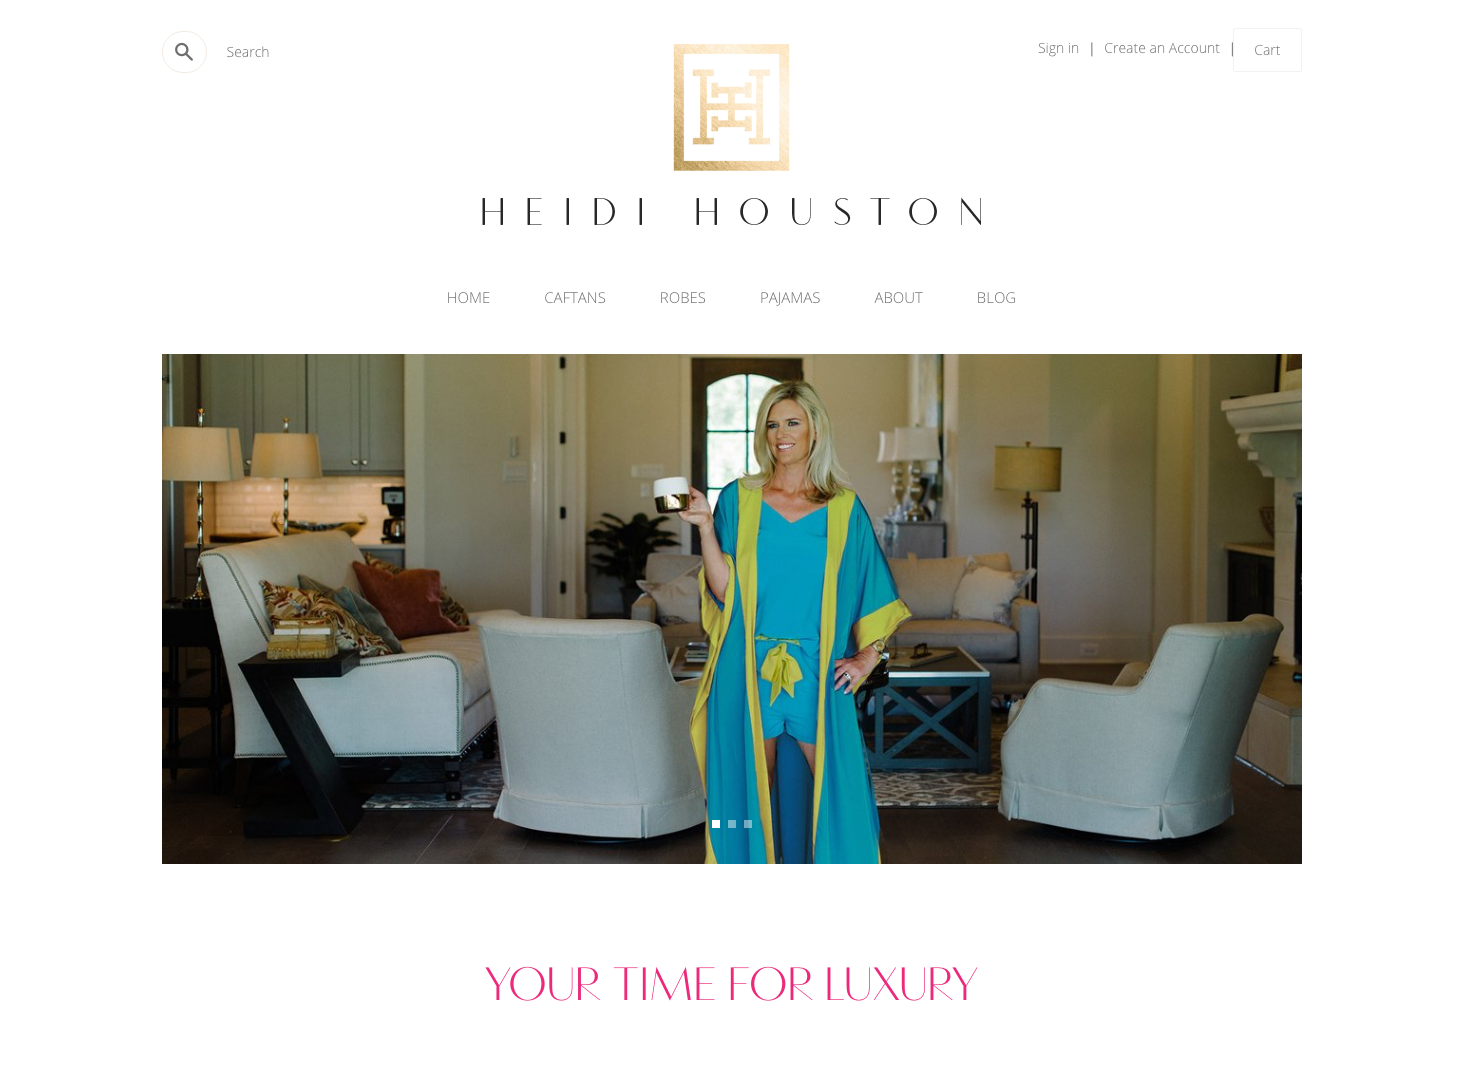 Heidi Houston says it's Your Time for Luxury...Which is all the time, it's it?!?!?